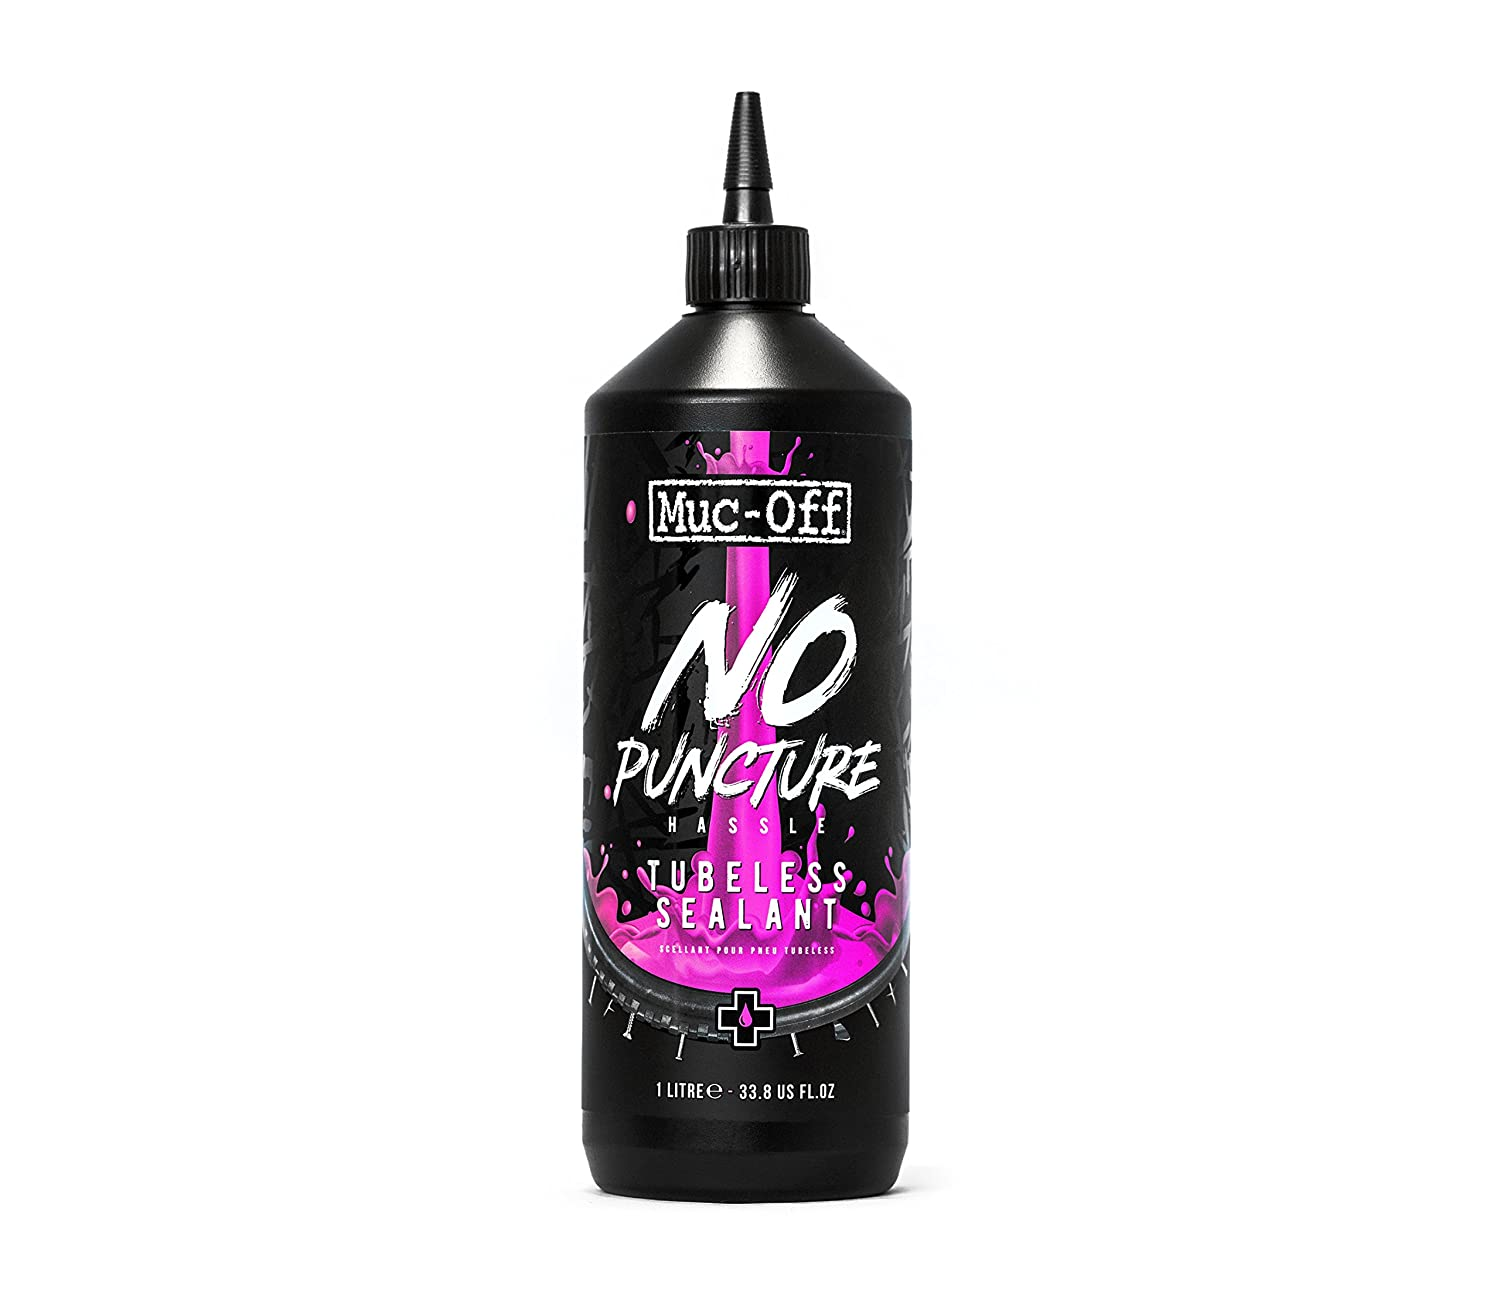 Muc-Off 822_Rose Pré ventif tubeless, 1 Litre MUCOV|#Muc-Off